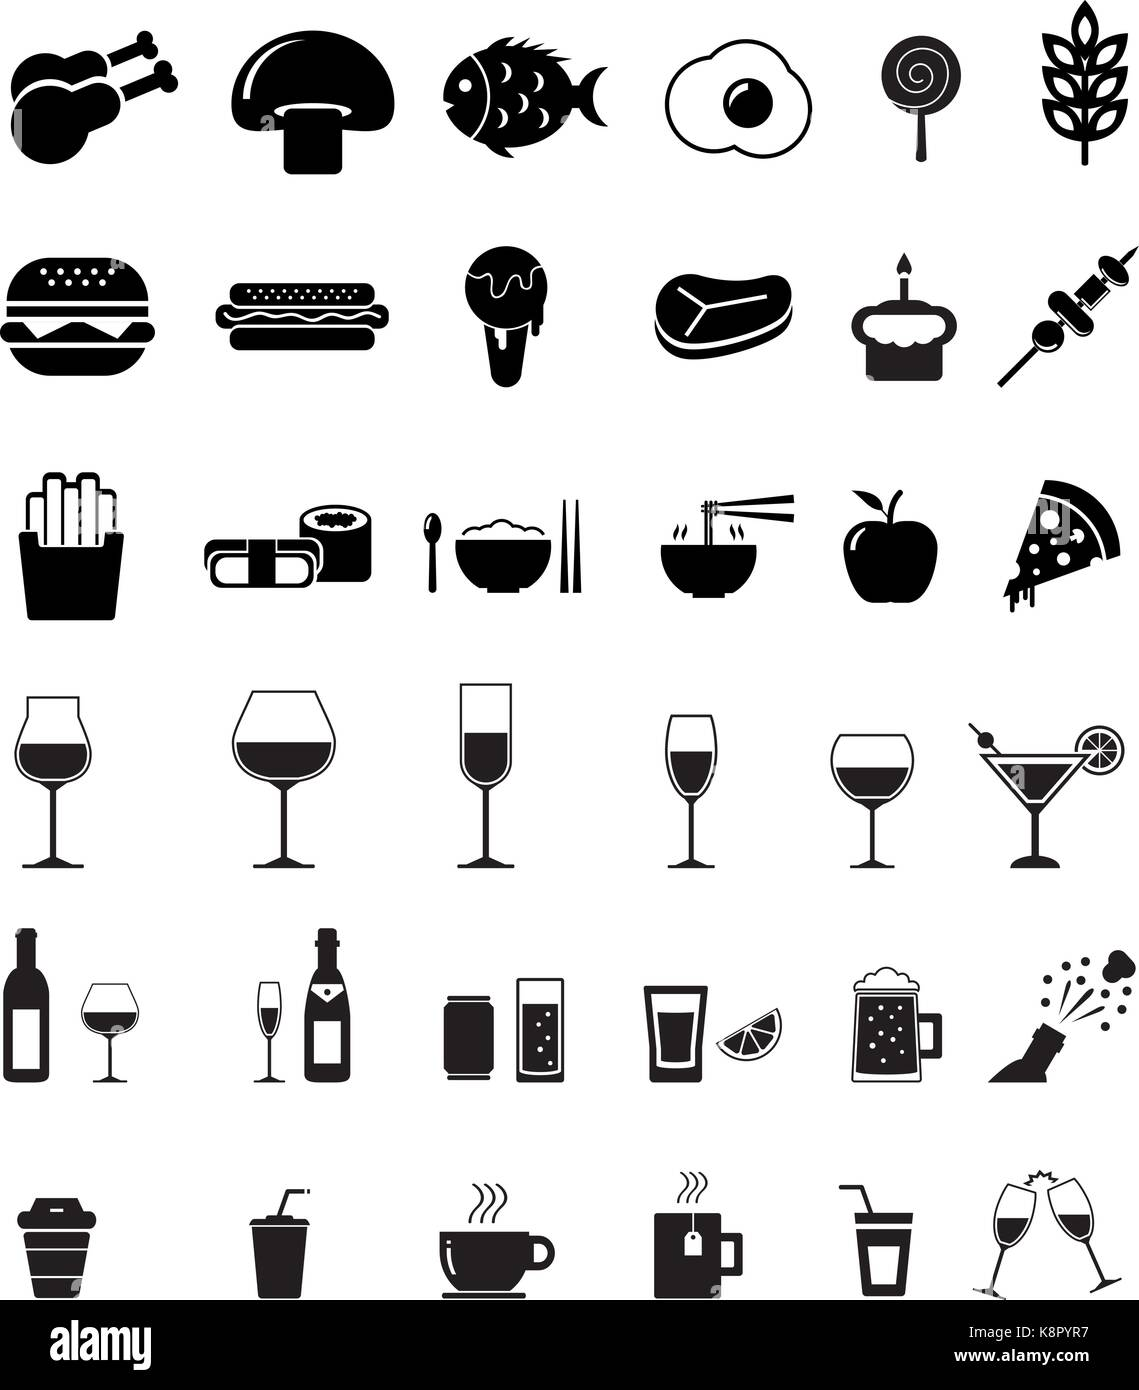 Food and drink icon - Stock Vector